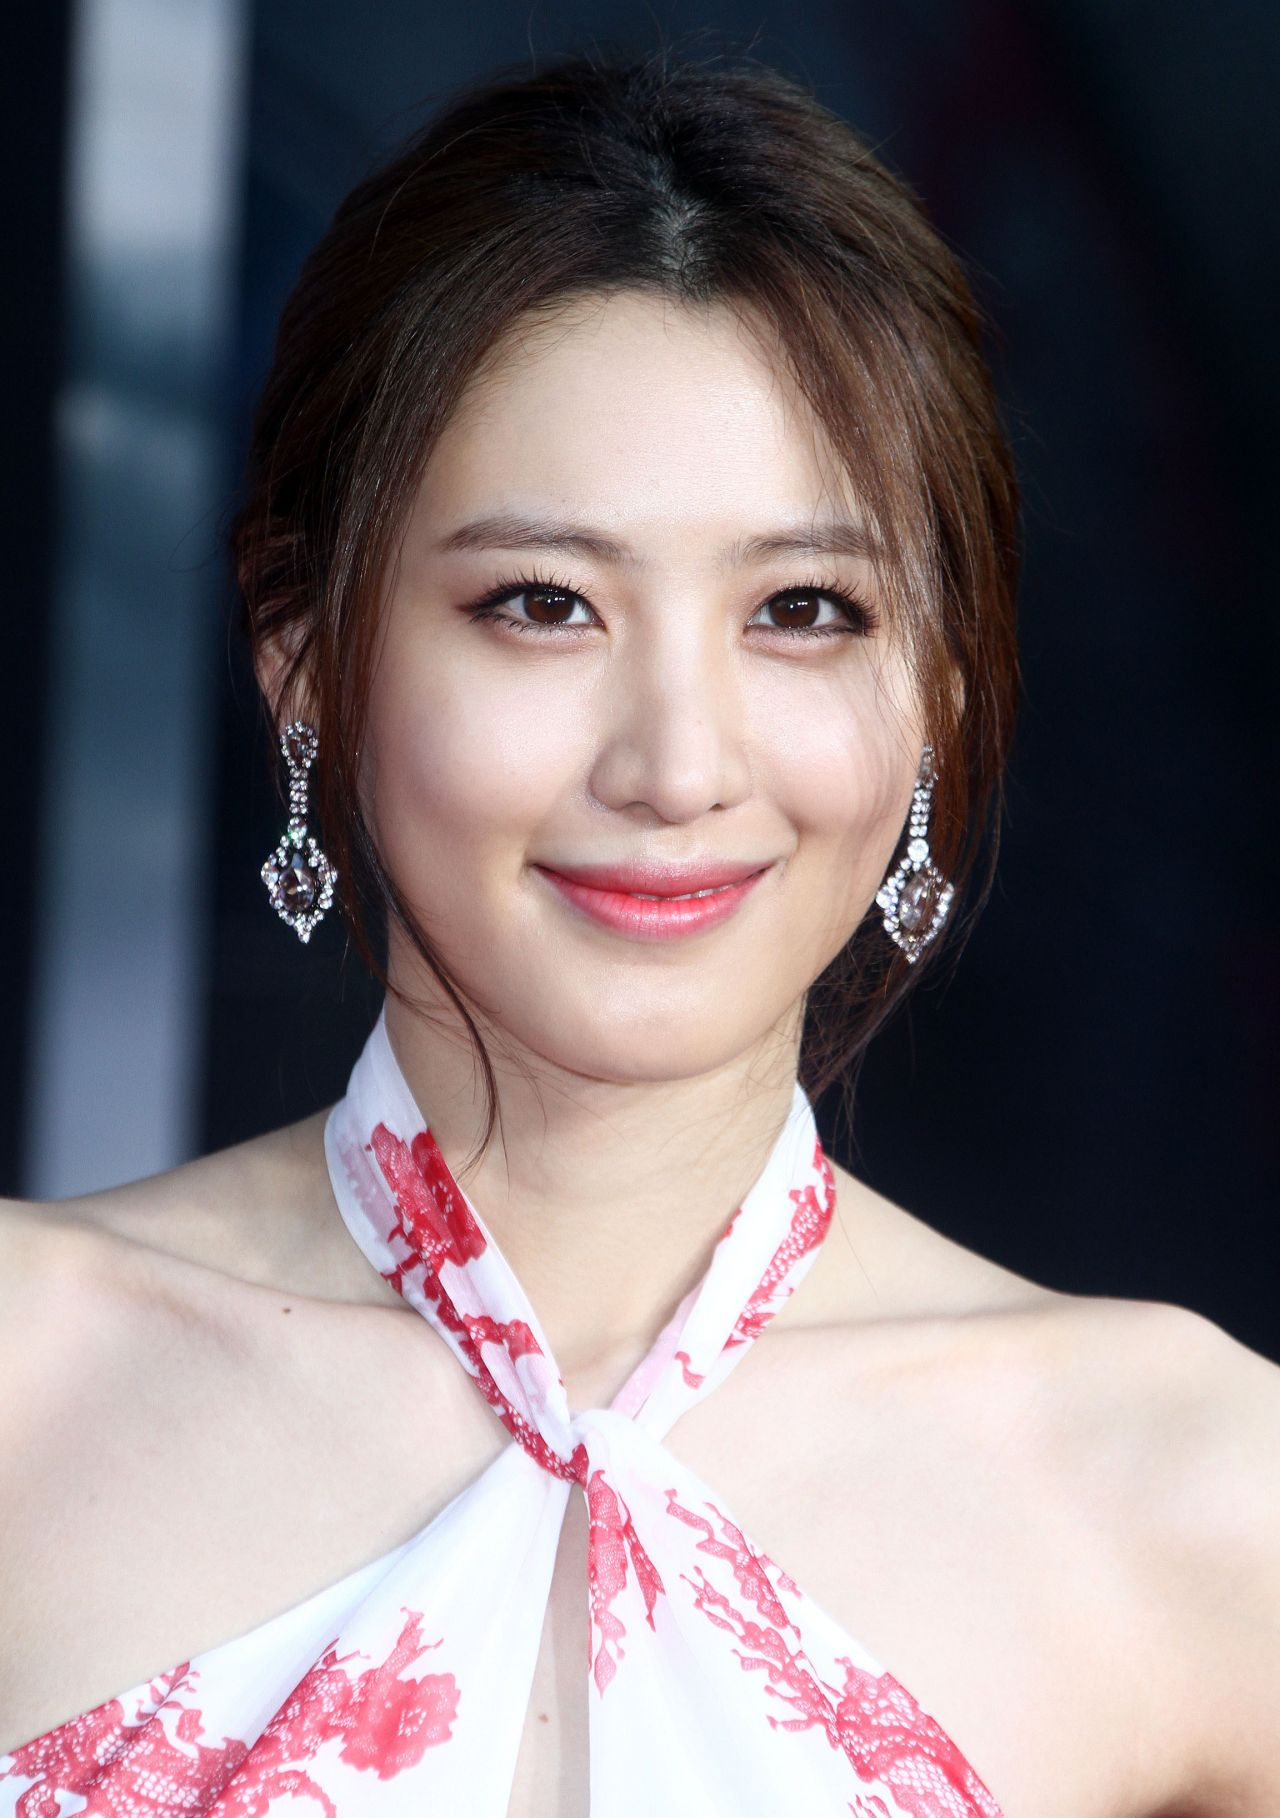 The 32-year old daughter of father (?) and mother(?), 170 cm tall Claudia Kim in 2017 photo